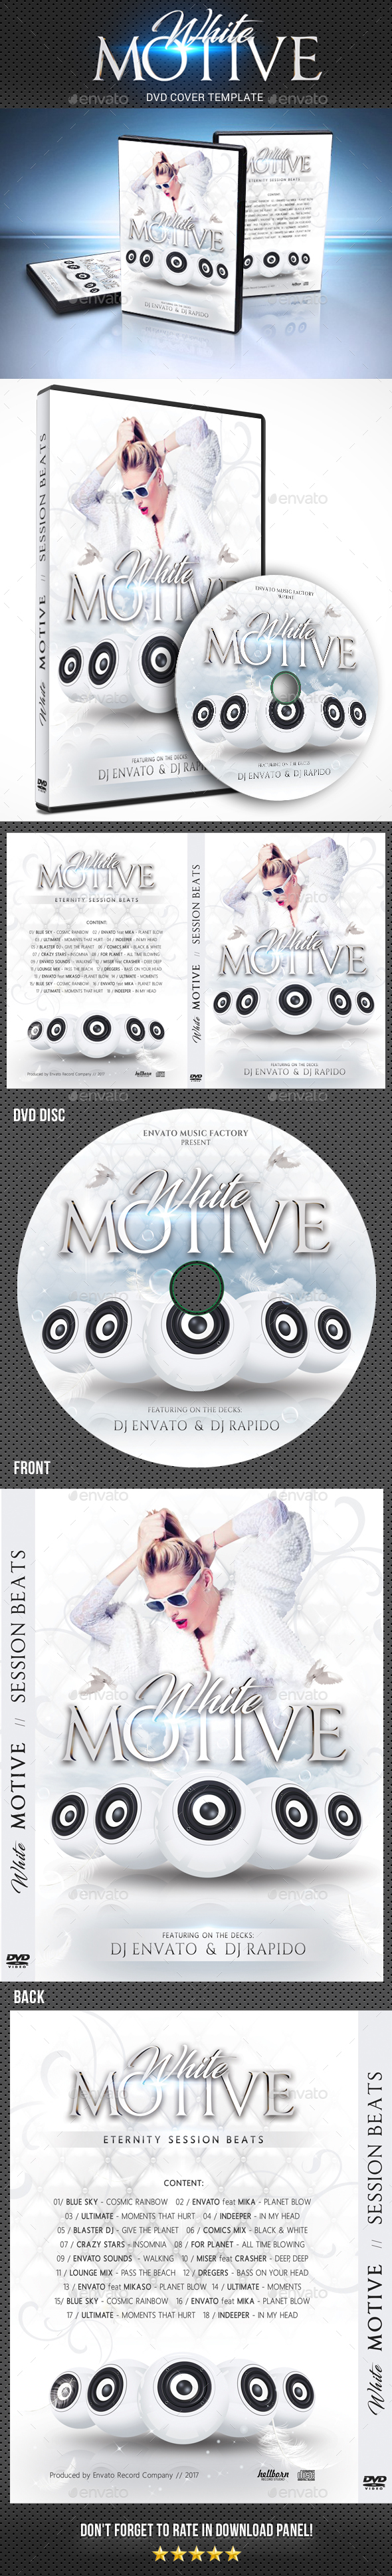 White Motive DVD Cover Template - CD & DVD Artwork Print Templates